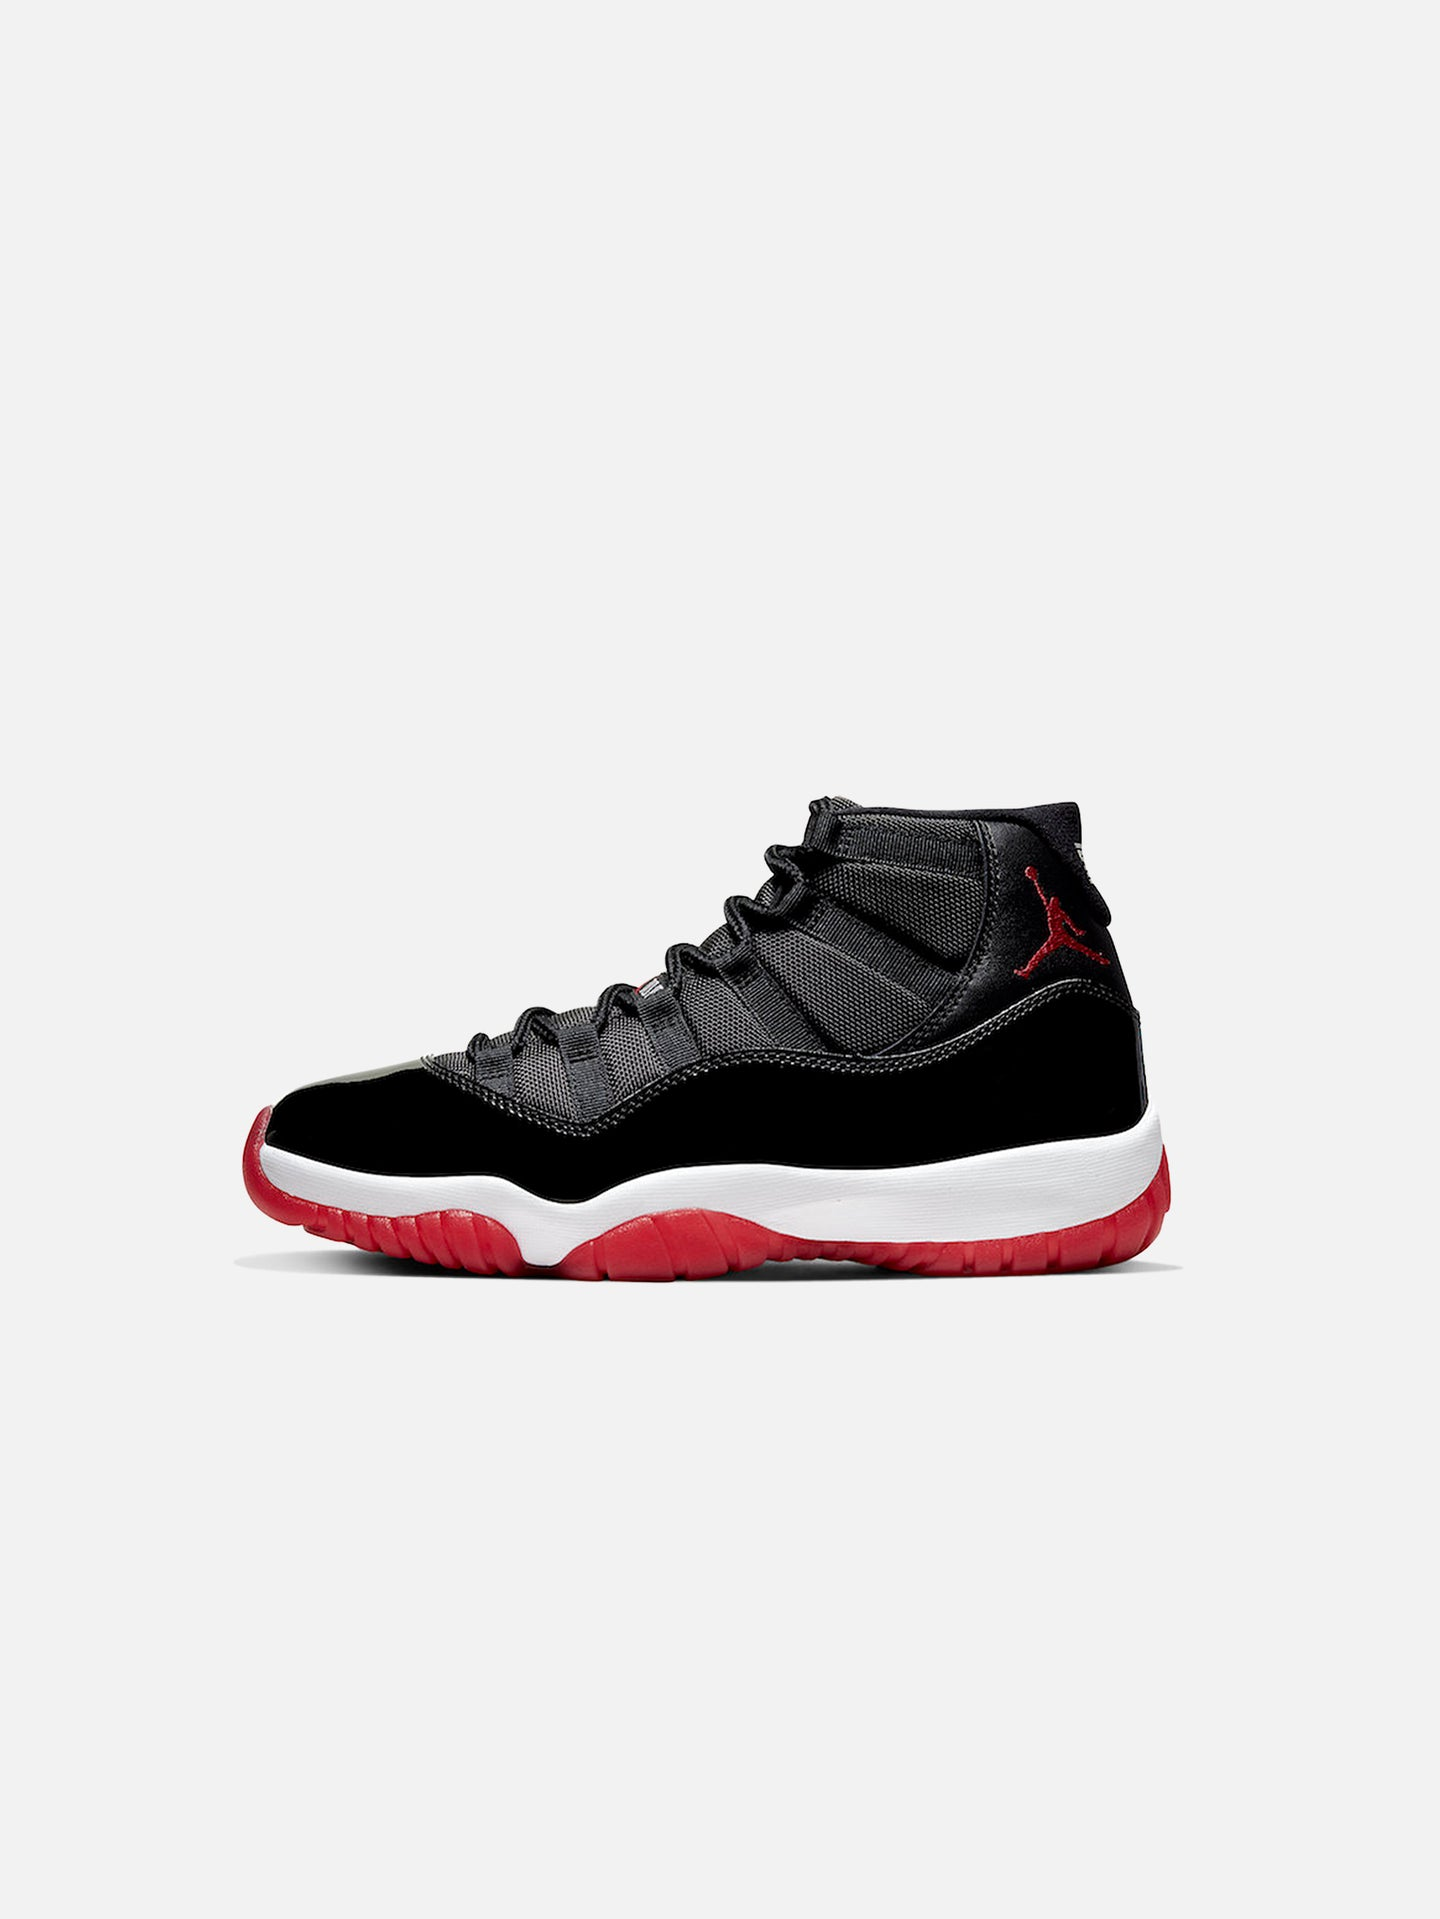 AIR JORDAN XI: BRED